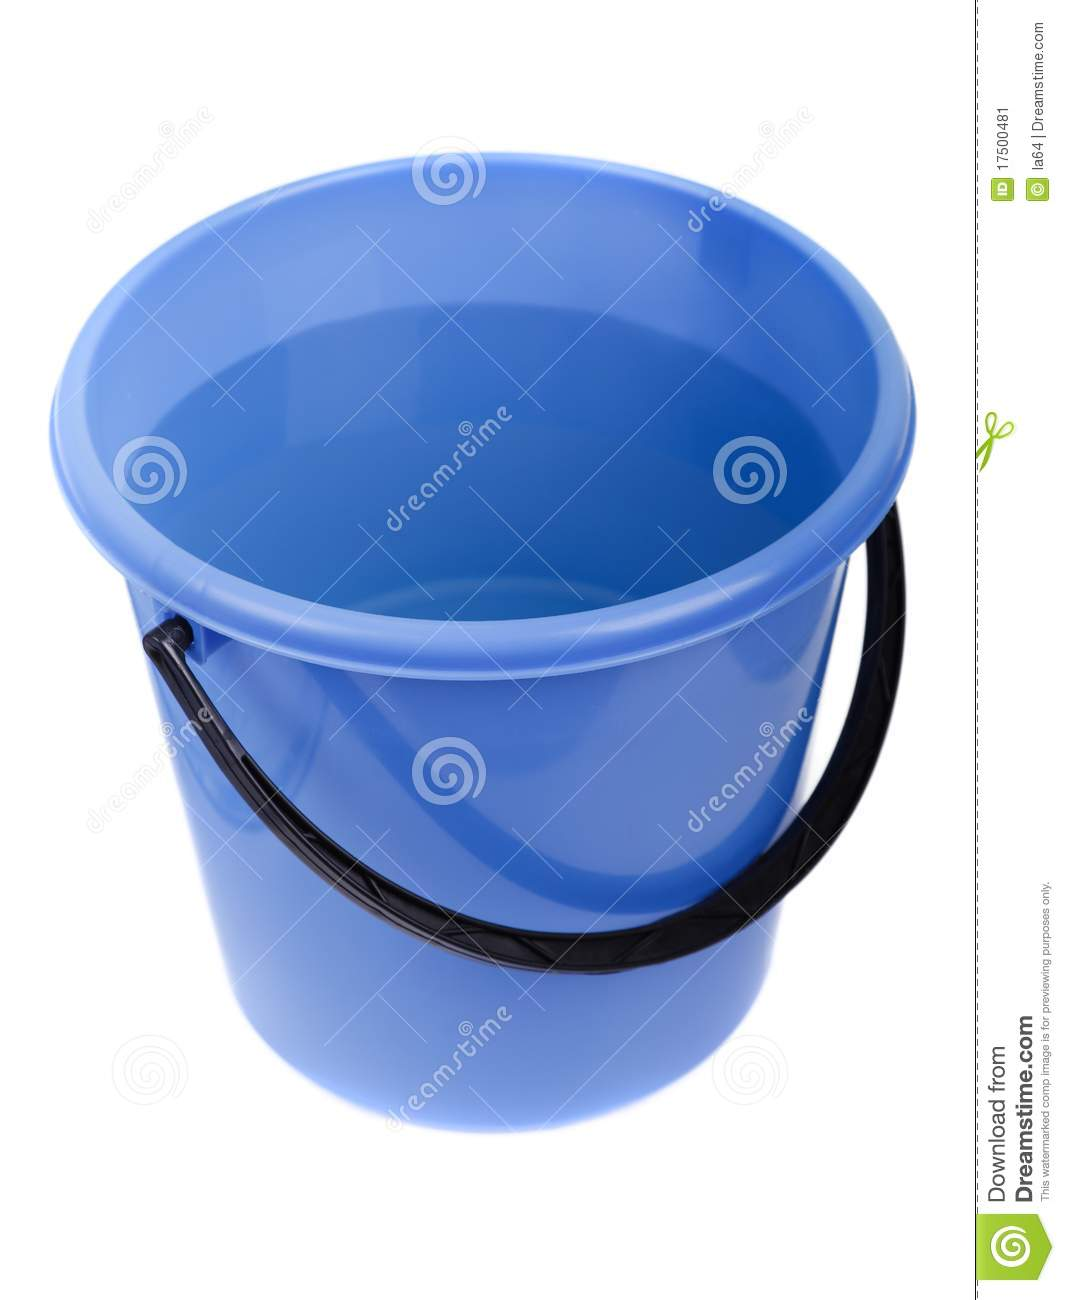 Container Home Plans: Water Full Plastic Bucket Stock Image. Image Of Cleaning